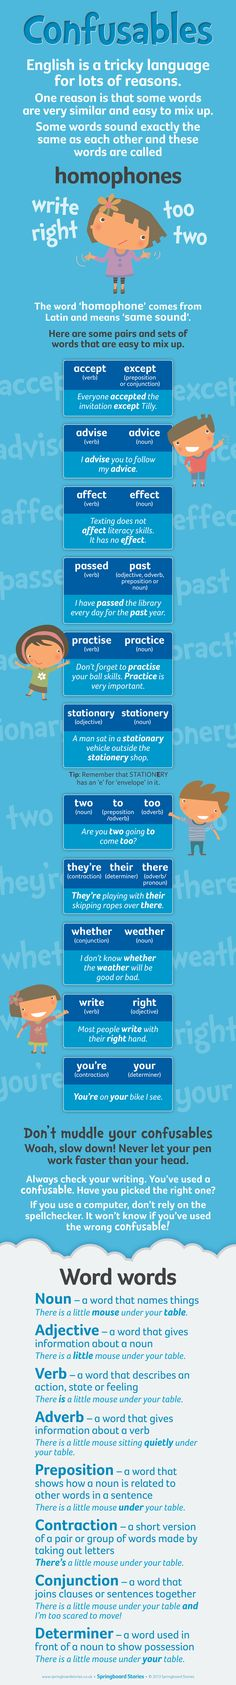 Use this infographic on your whiteboard or as a handy reference file on your tablet or class workstation.   This infographic will help explain some of those tricky homophones... plus a little bit of valuable advice about not letting your pen work faster than your head. Also listed are some of those 'word words' that are useful to know when we are discussing our and other people's writing.  #literacy #education #grammar